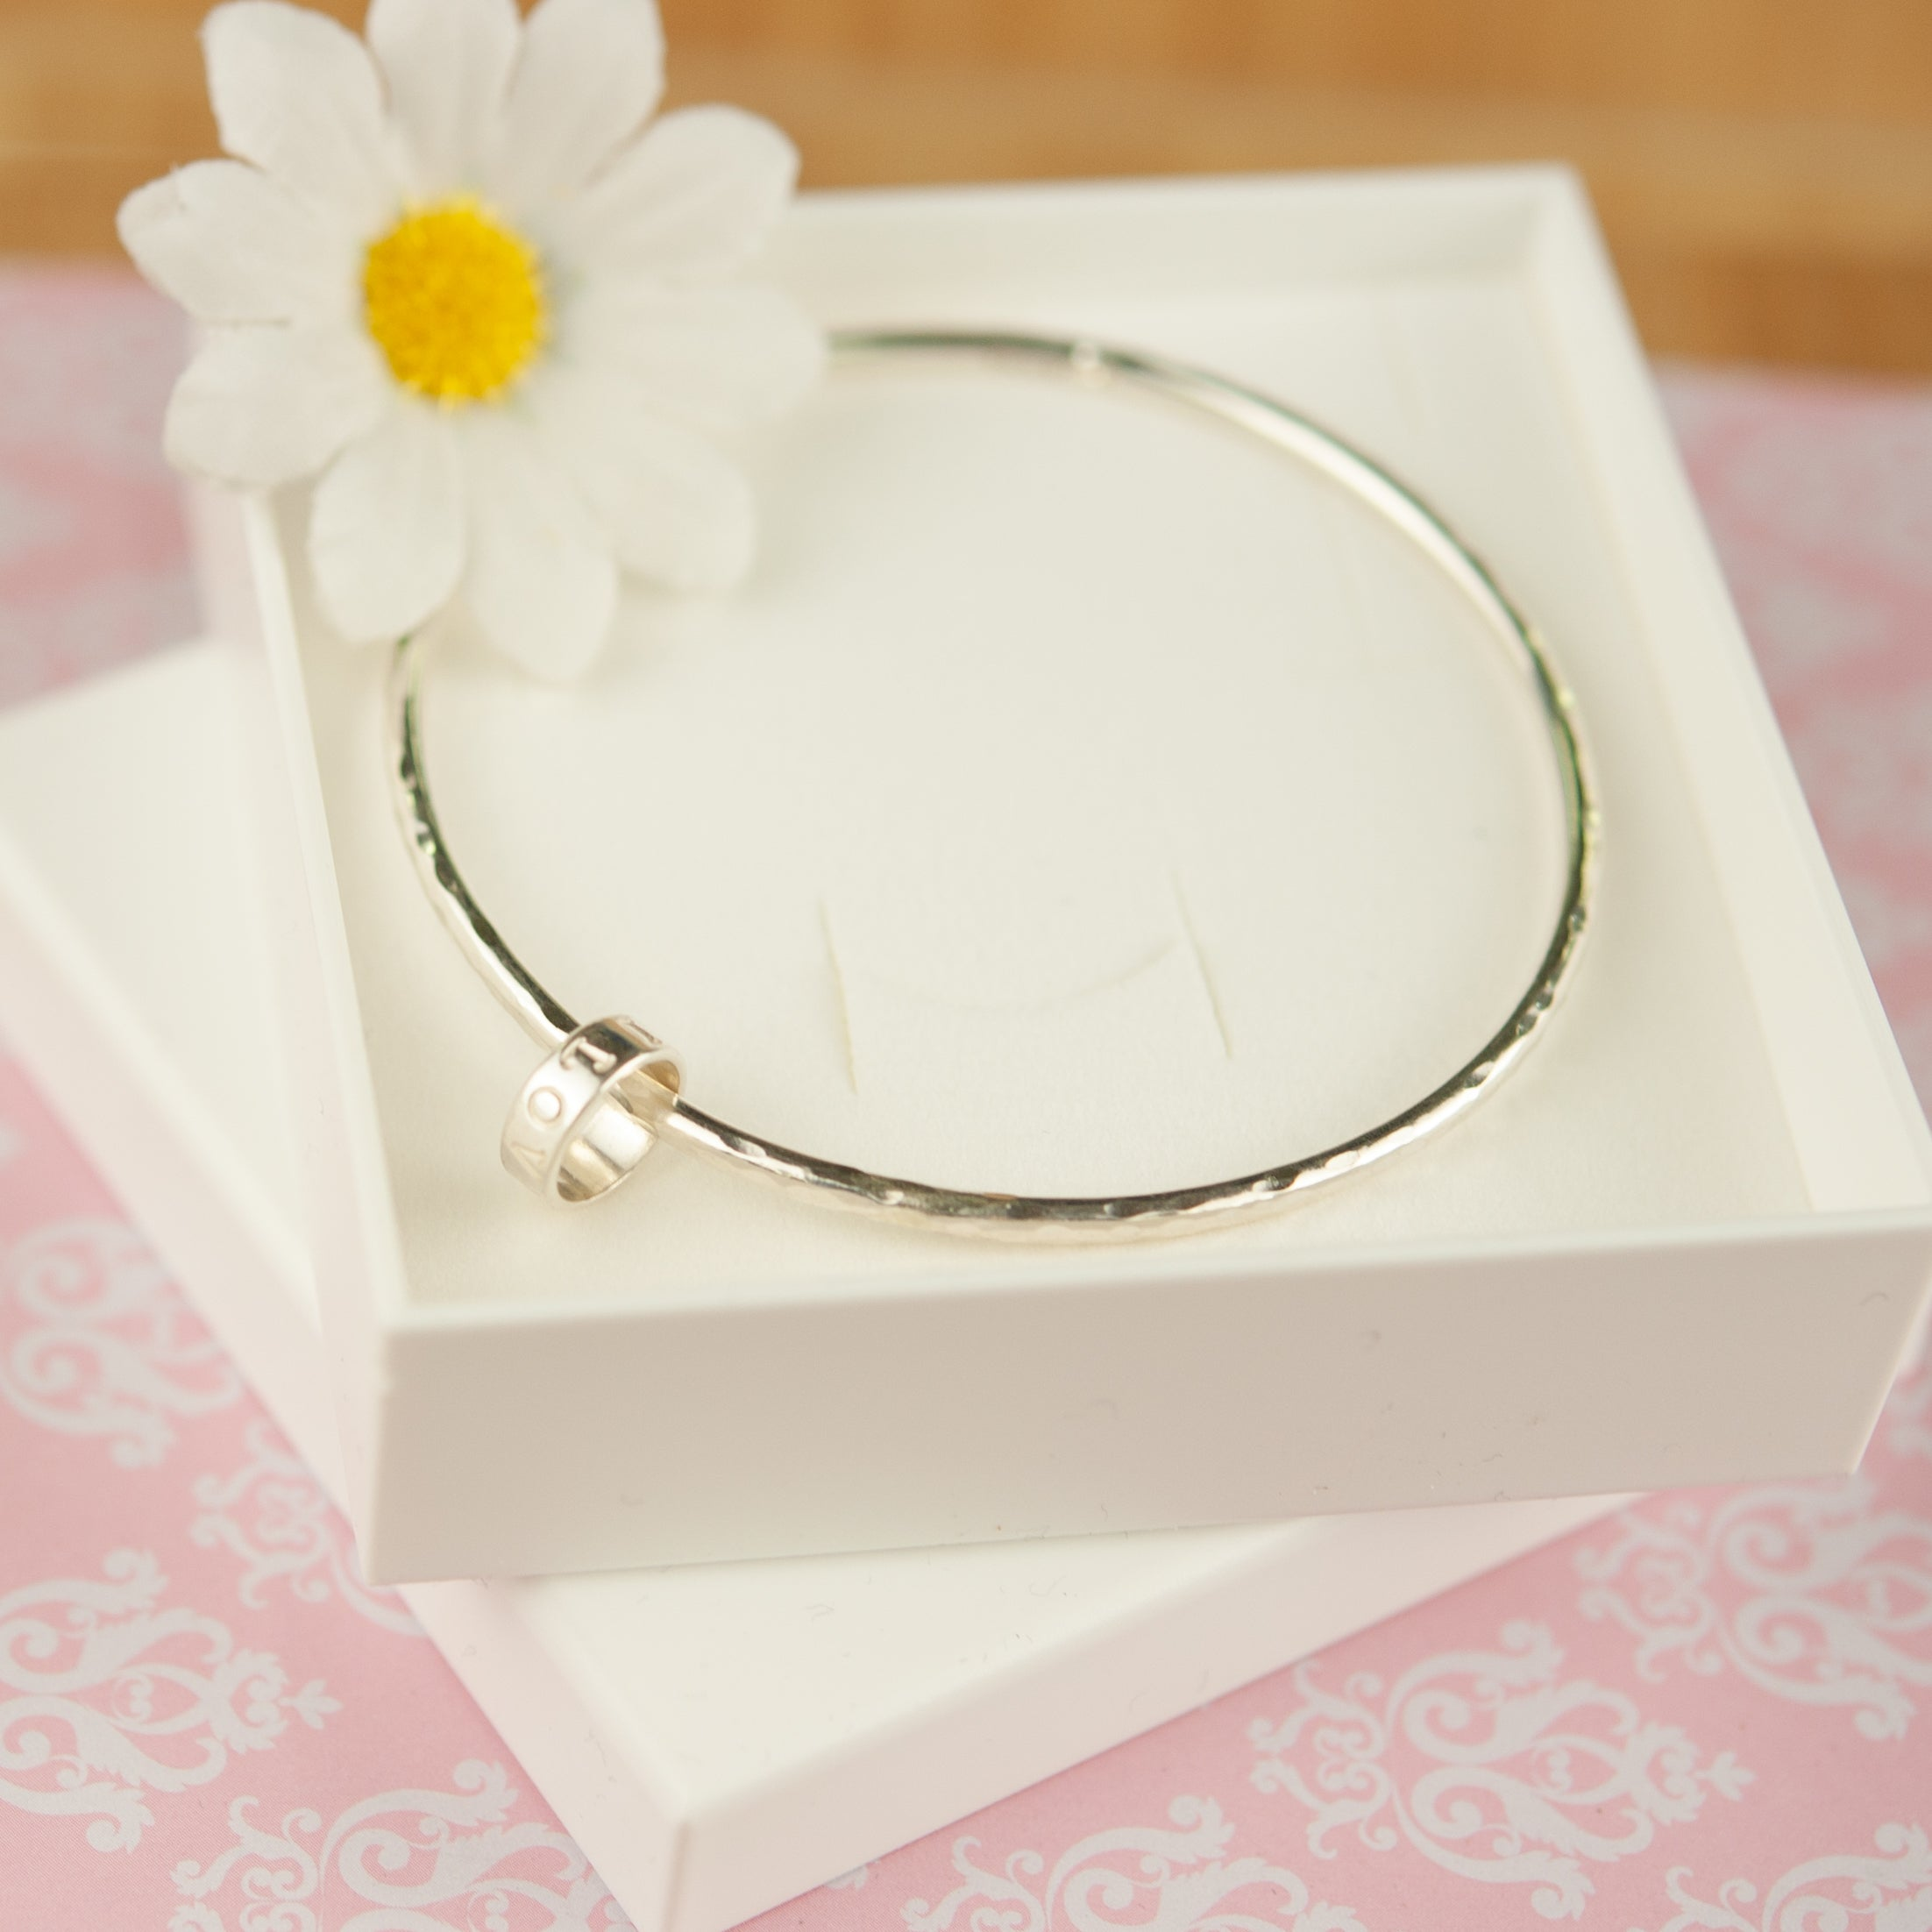 Belle & Bee midi bangle with personalised love loop